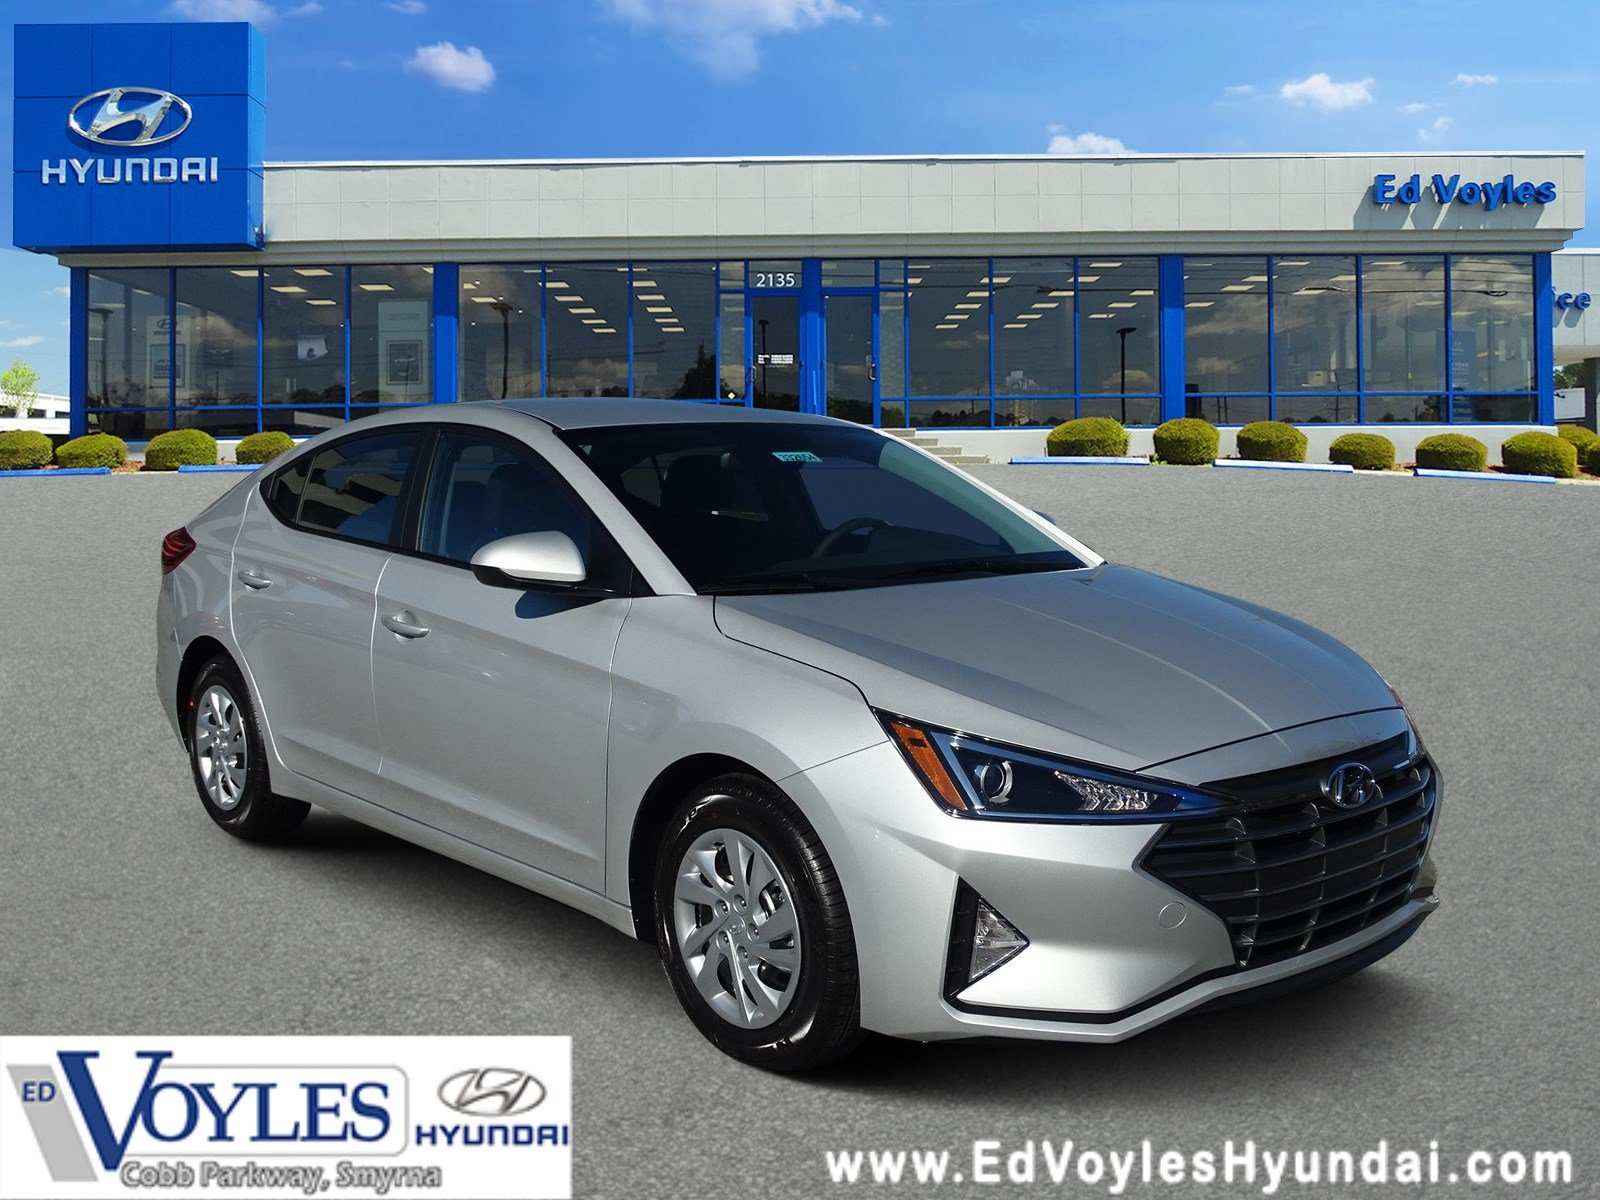 40 New 2019 Hyundai Elantra Review And Release Date